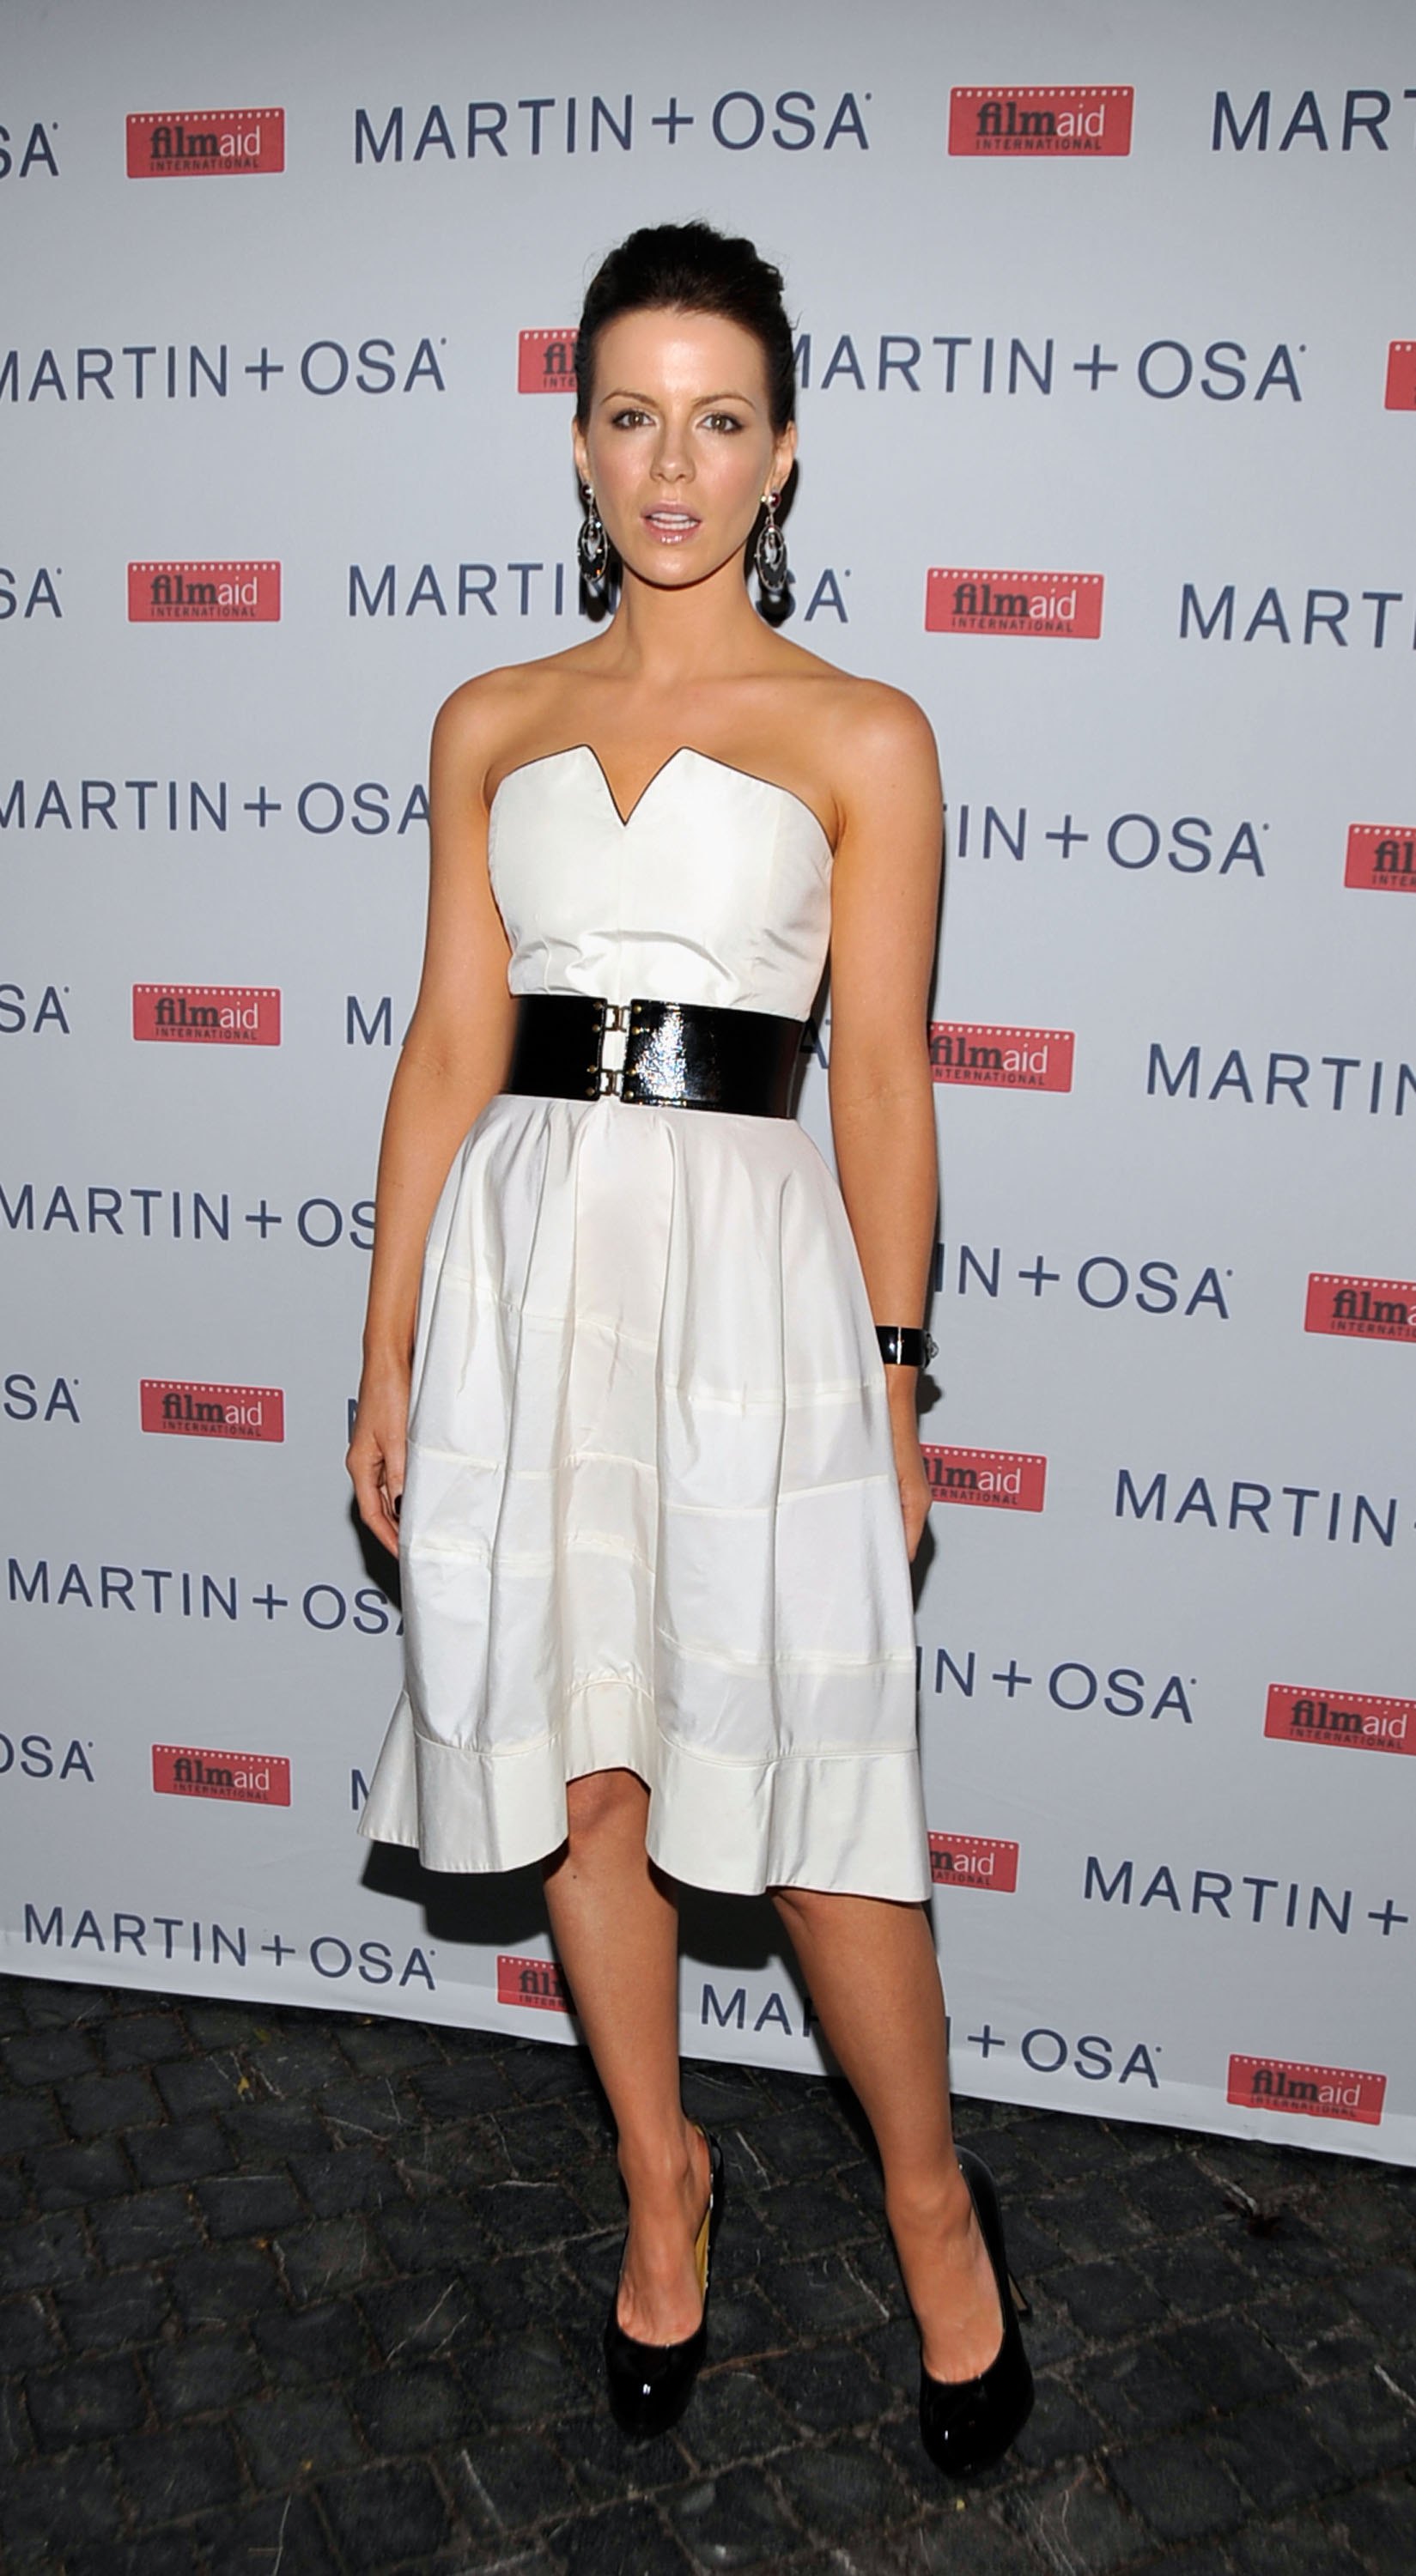 08669_Celebutopia-Kate_Beckinsale-Martin_2_Osa61s_Screening_Of_All_About_Eve_in_Hollywood-11_122_939lo.jpg